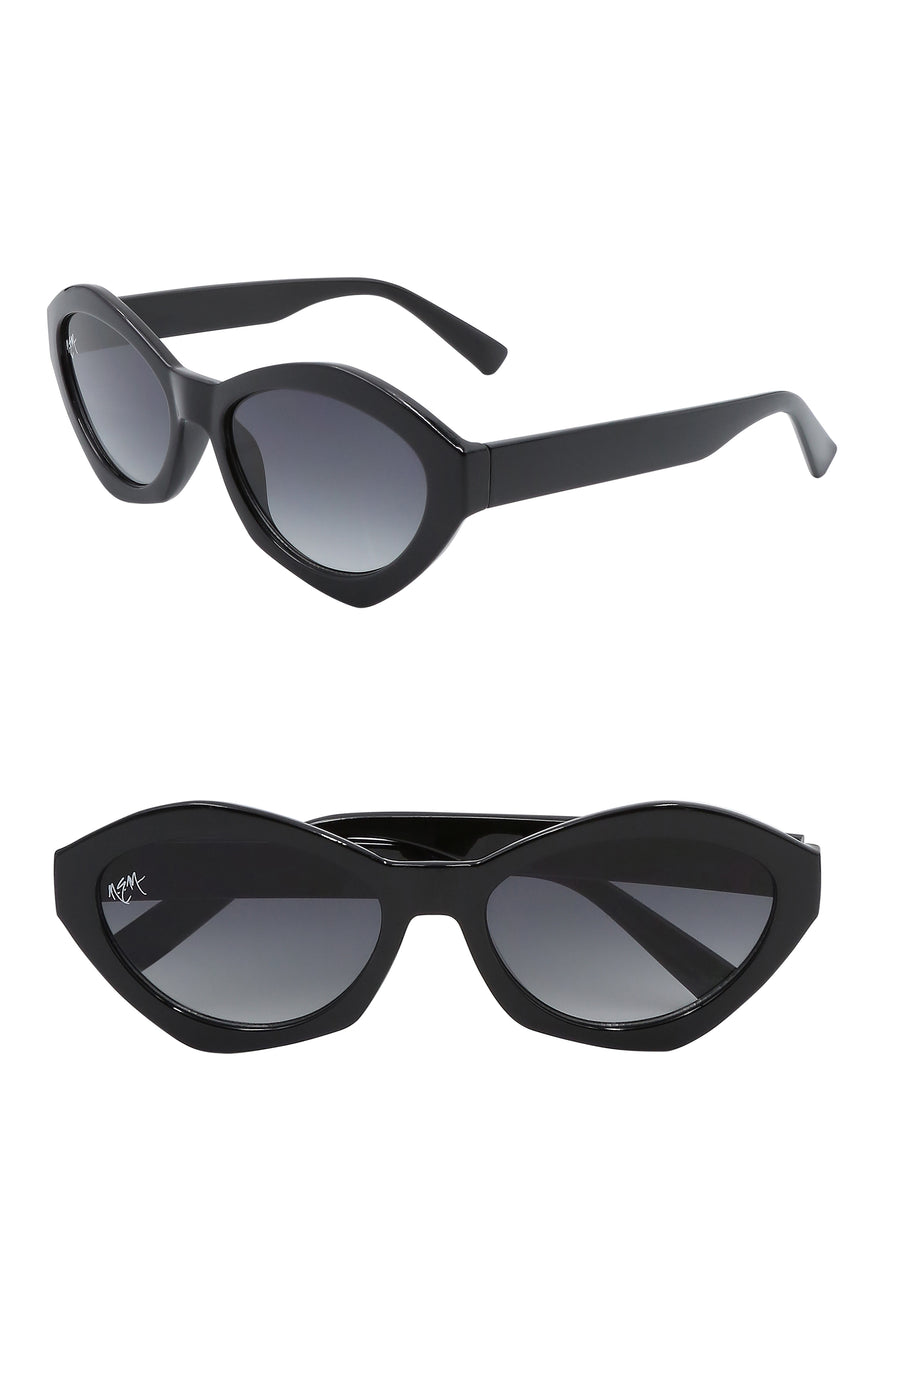 Bella Oval Sunnies | Gloss Black - NEM Fashion Store